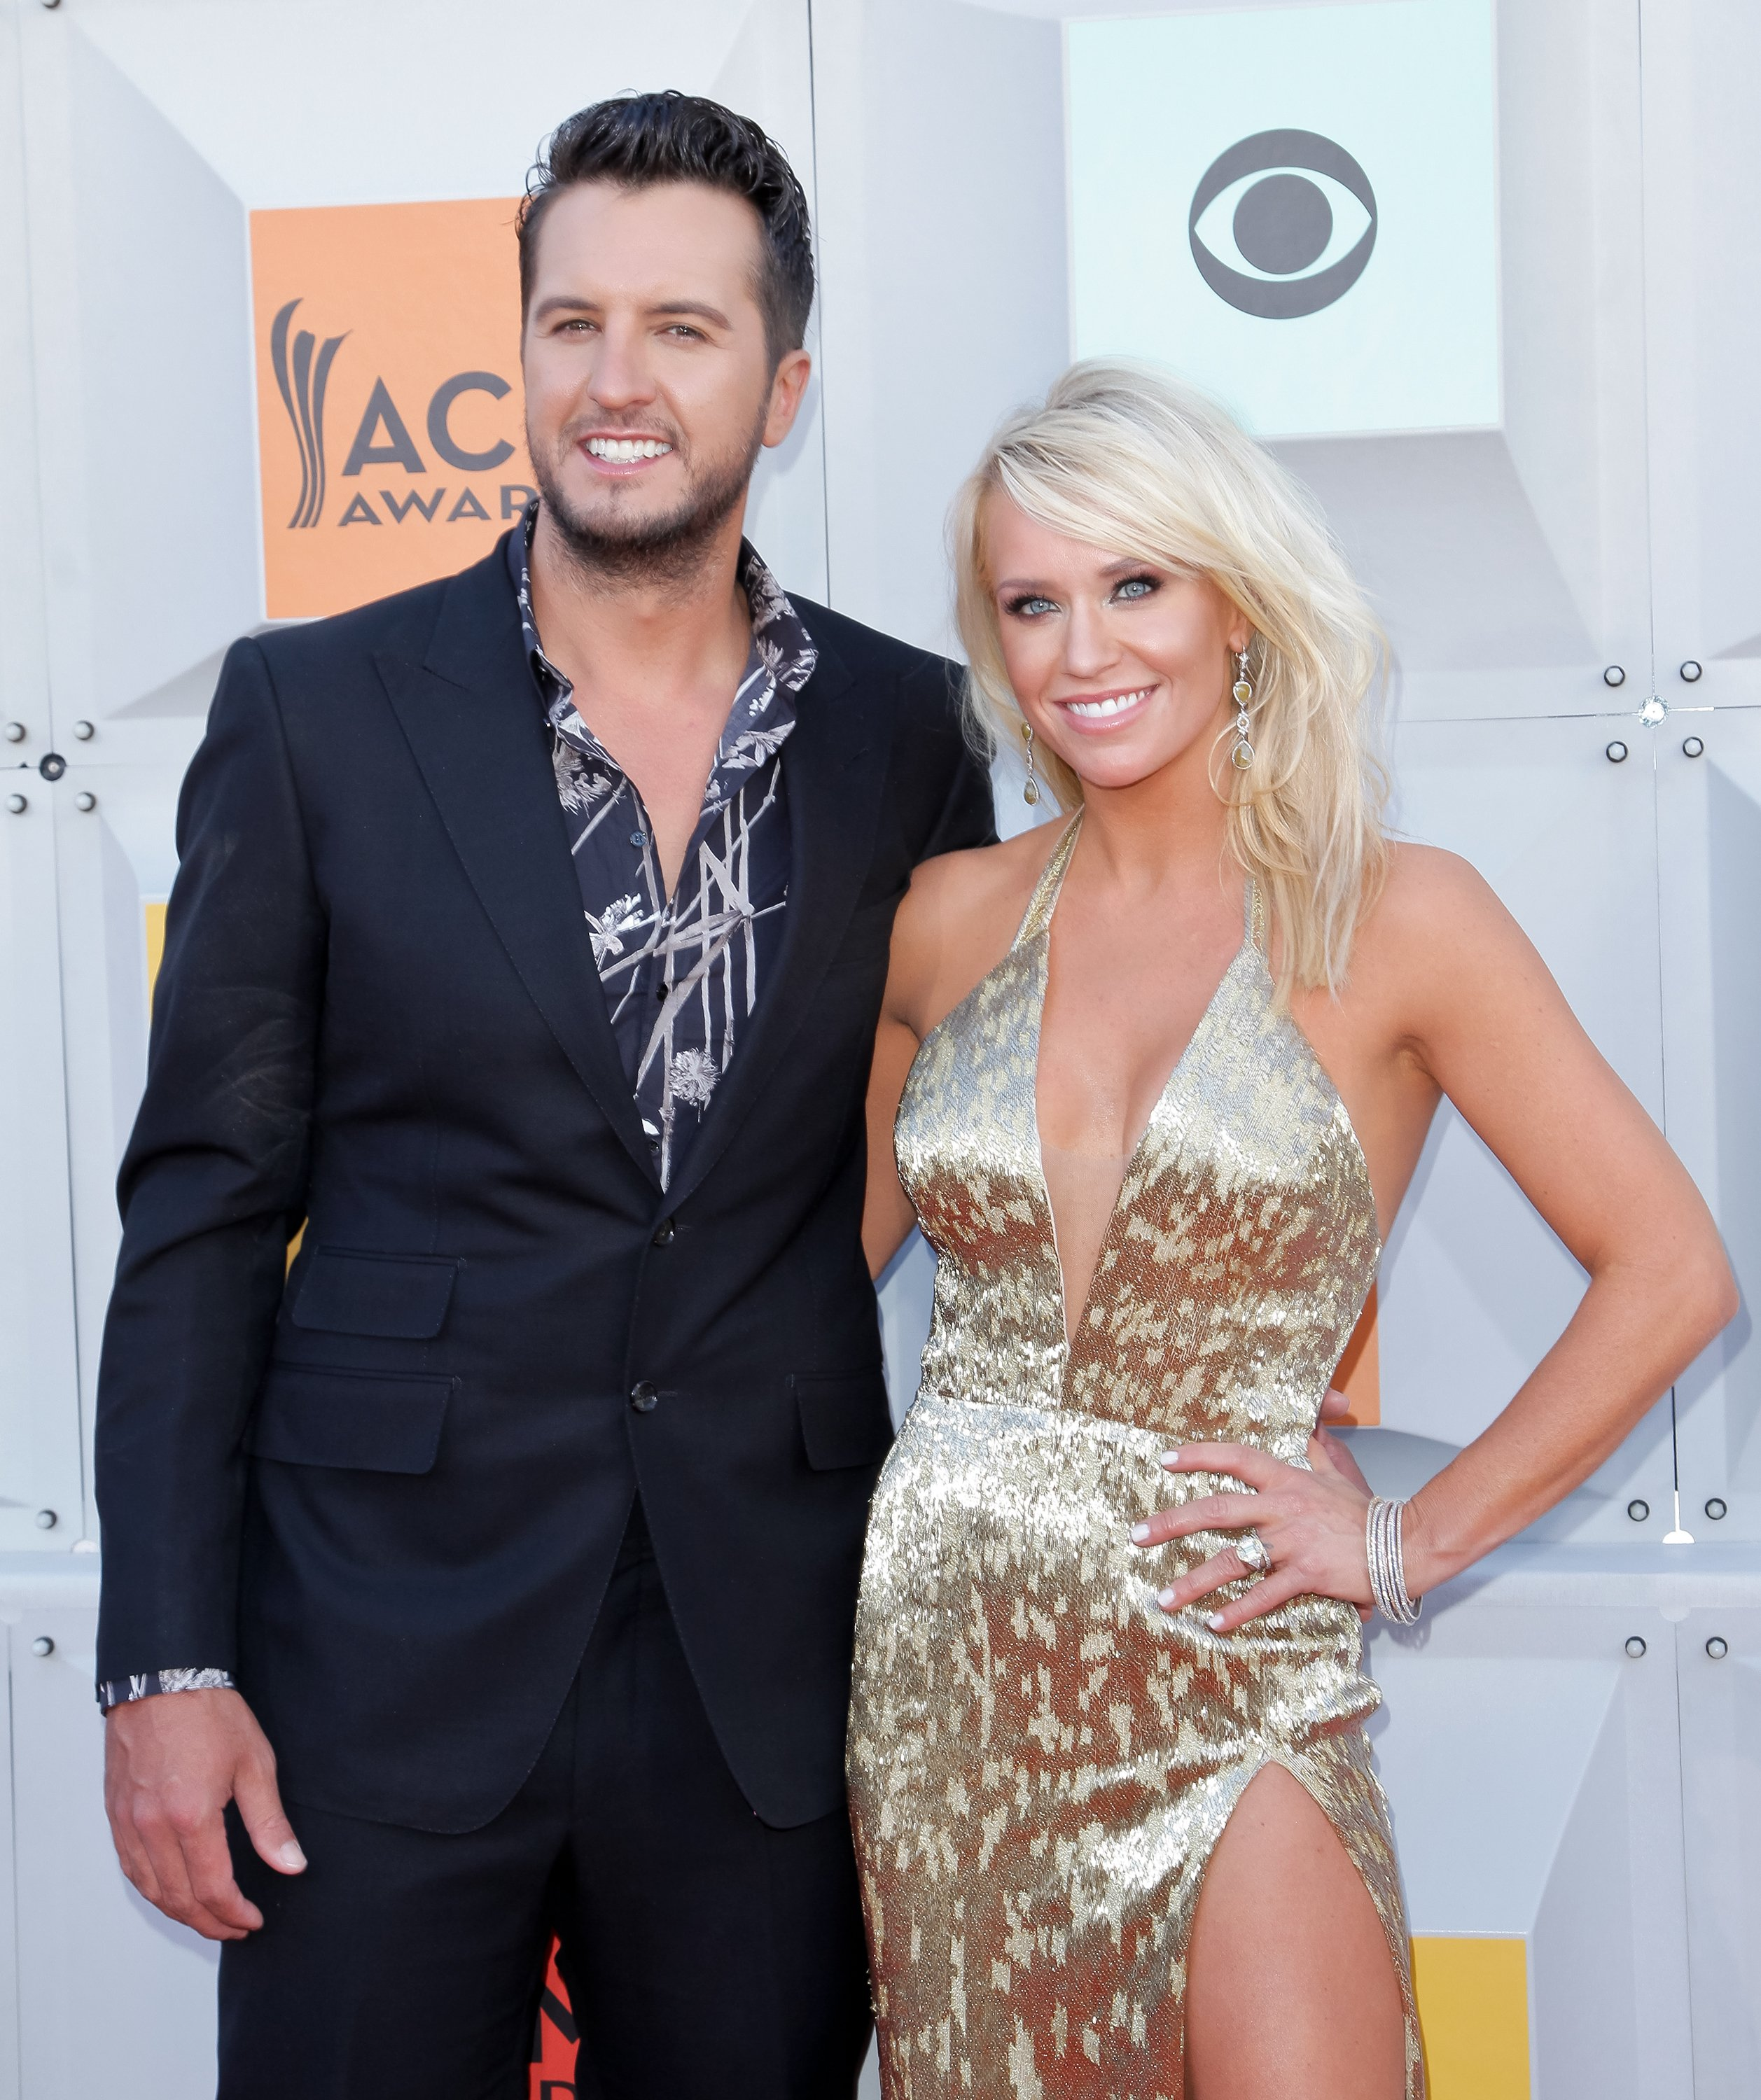 Luke Bryan and Caroline Boyer attend the 51st Academy of Country Music Awards at MGM Grand Garden Arena on April 3, 2016 in Las Vegas, Nevada. | Photo: Getty Images